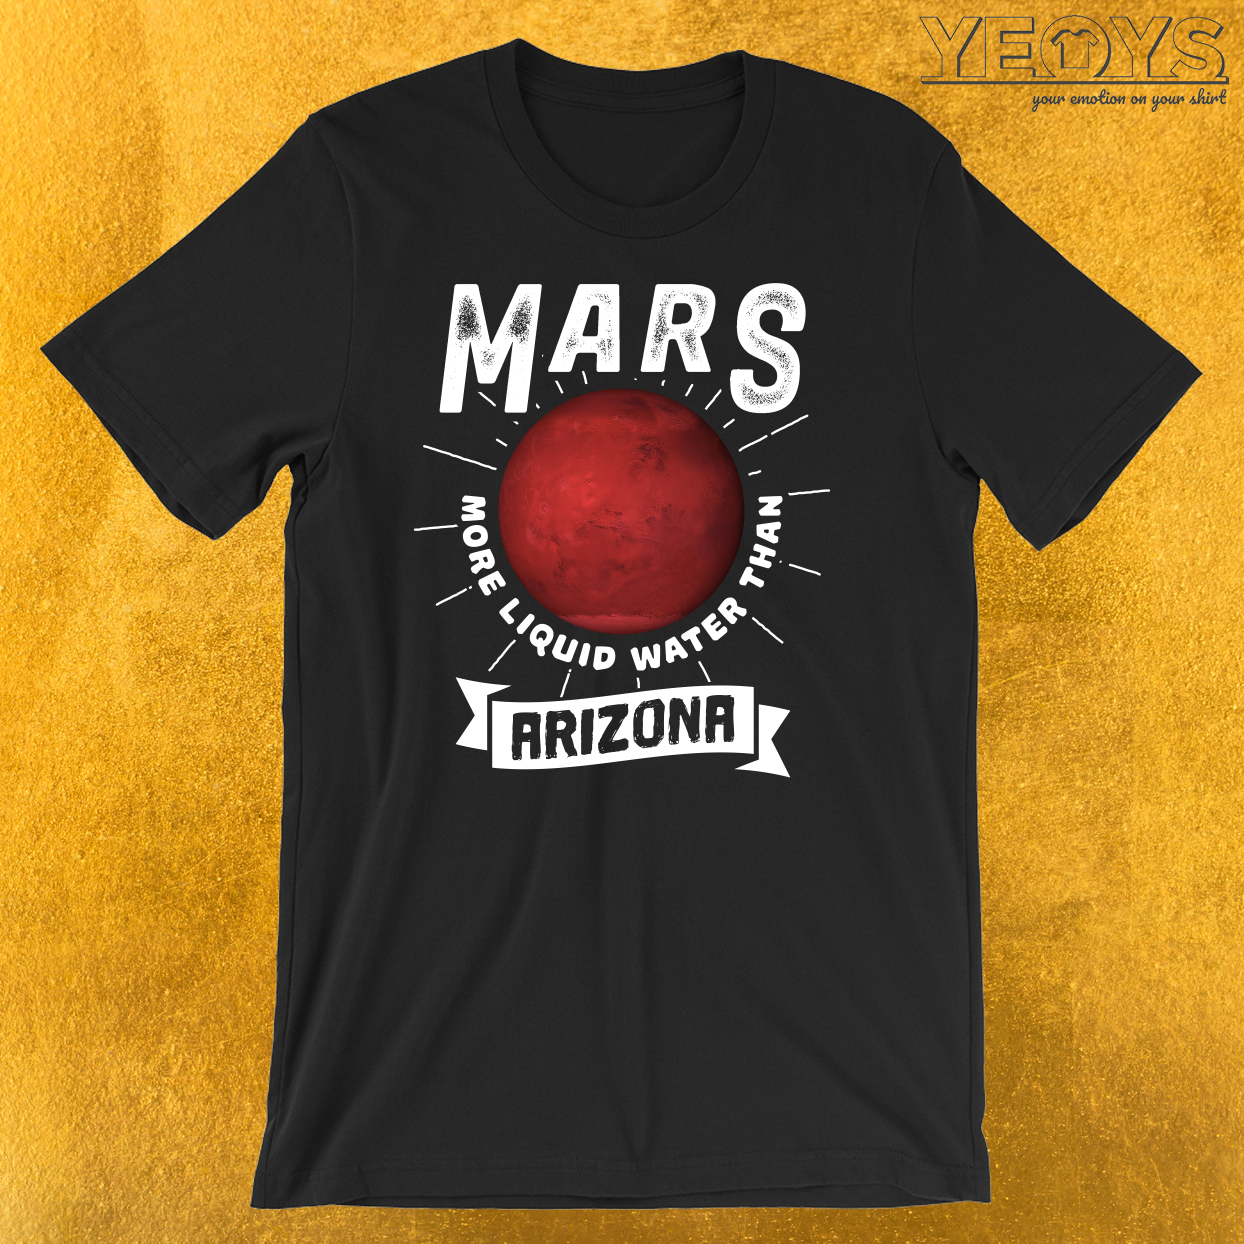 Mars More Liquid Water Than Arizona T-Shirt